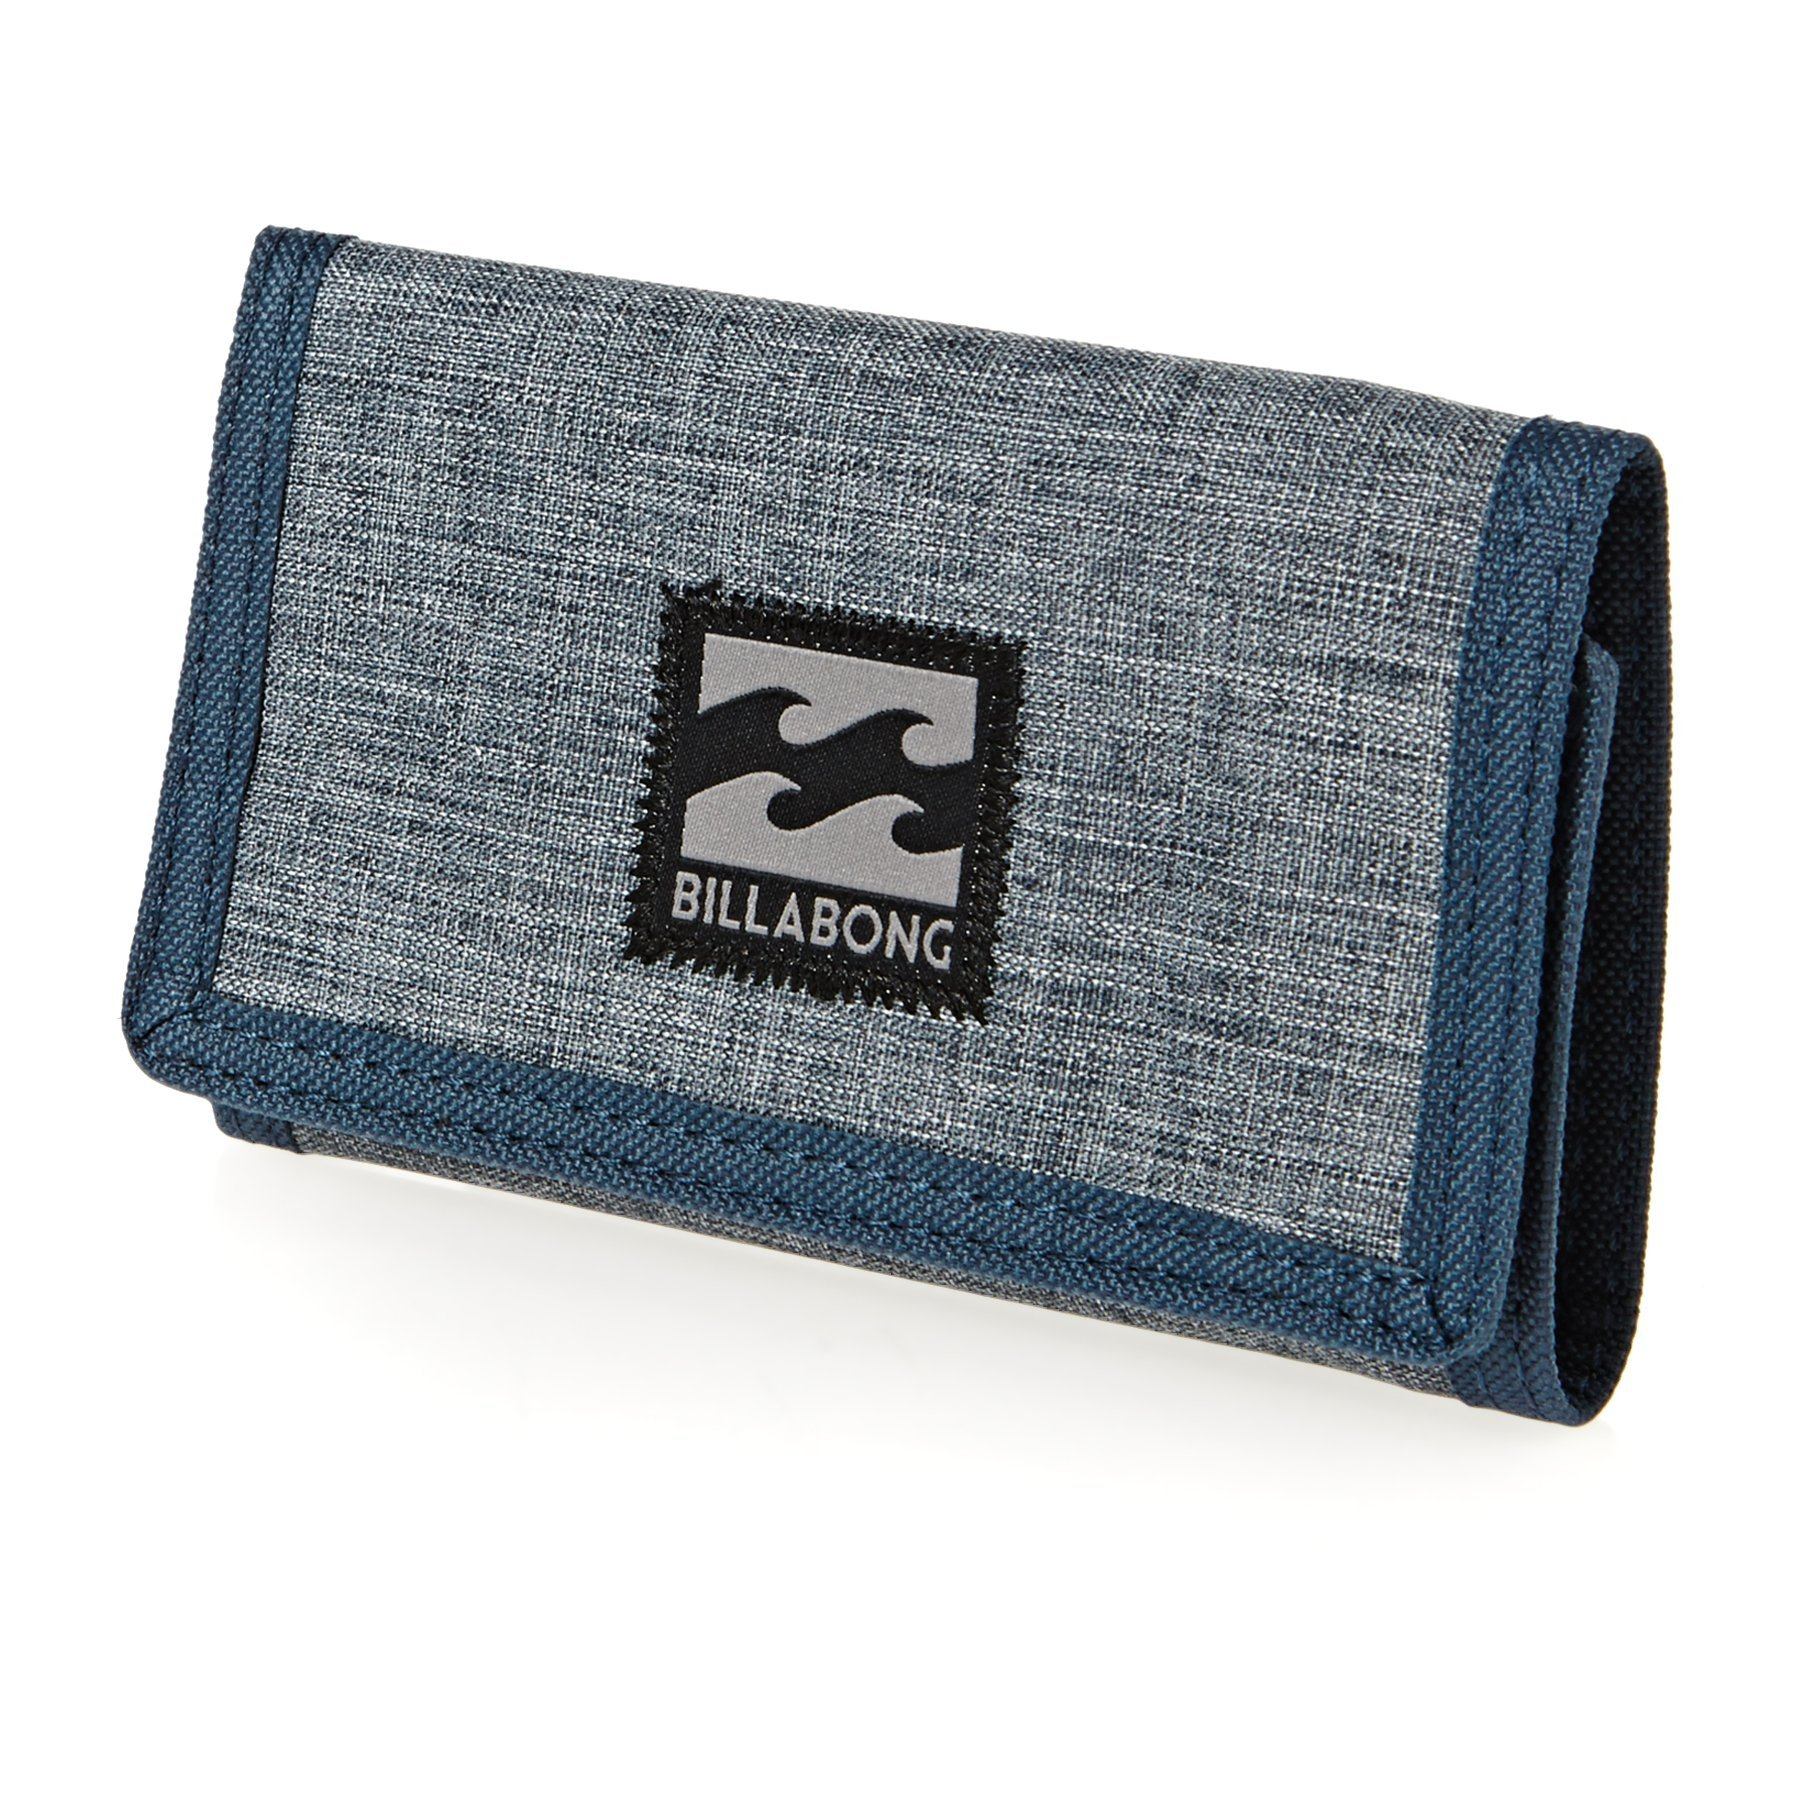 Billabong Atom Wallet One Size Dark Slate Heather by Billabong (Image #1)